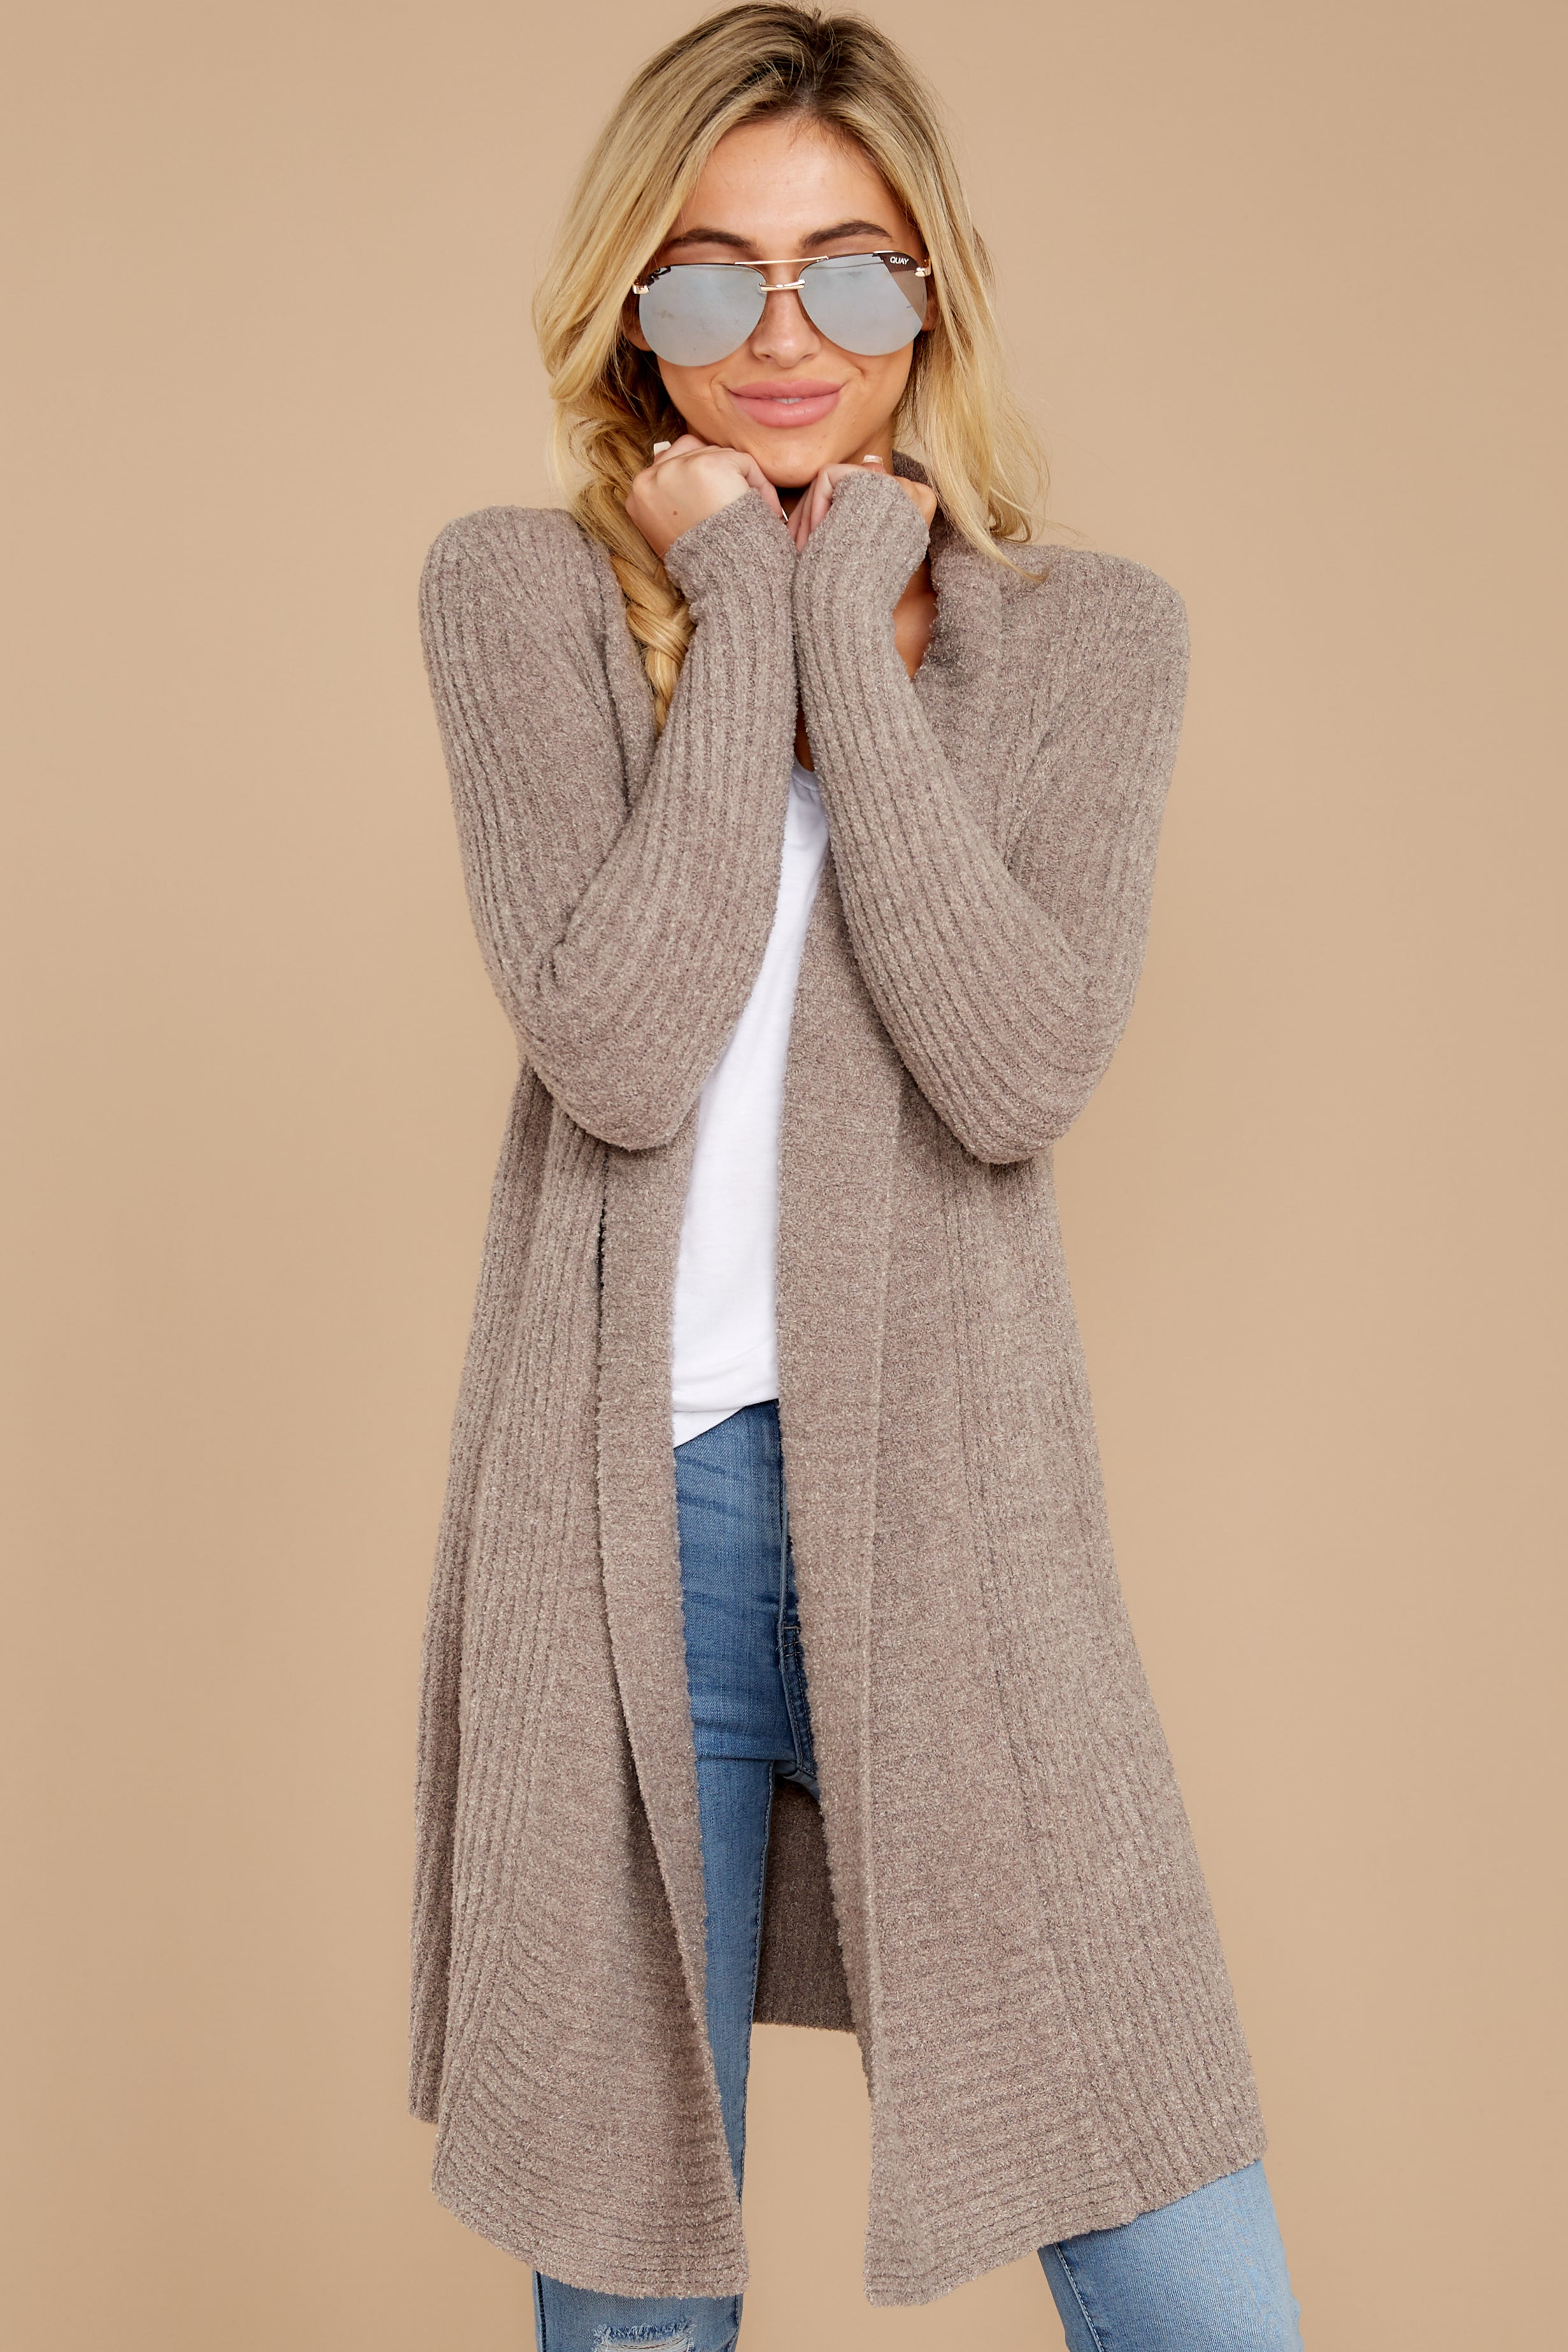 The Cozychic Lite® Driftwood Taupe Montecito Cardi